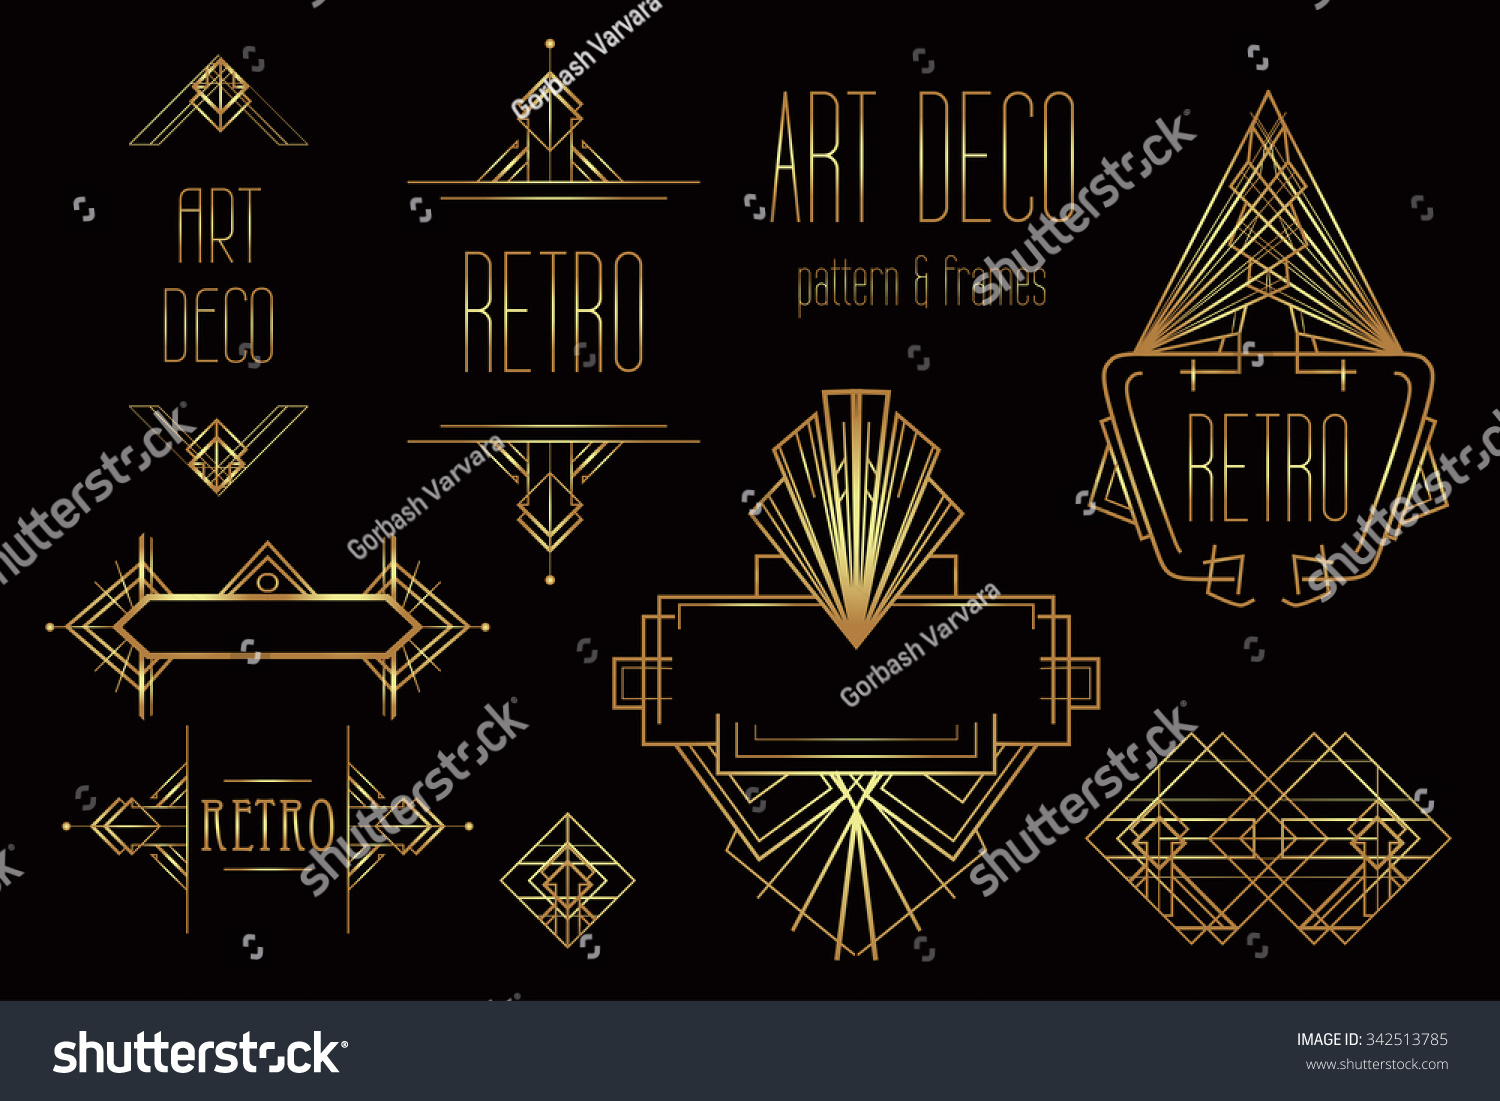 Art Deco Vintage Patterns And Design Elements Retro Party Geometric